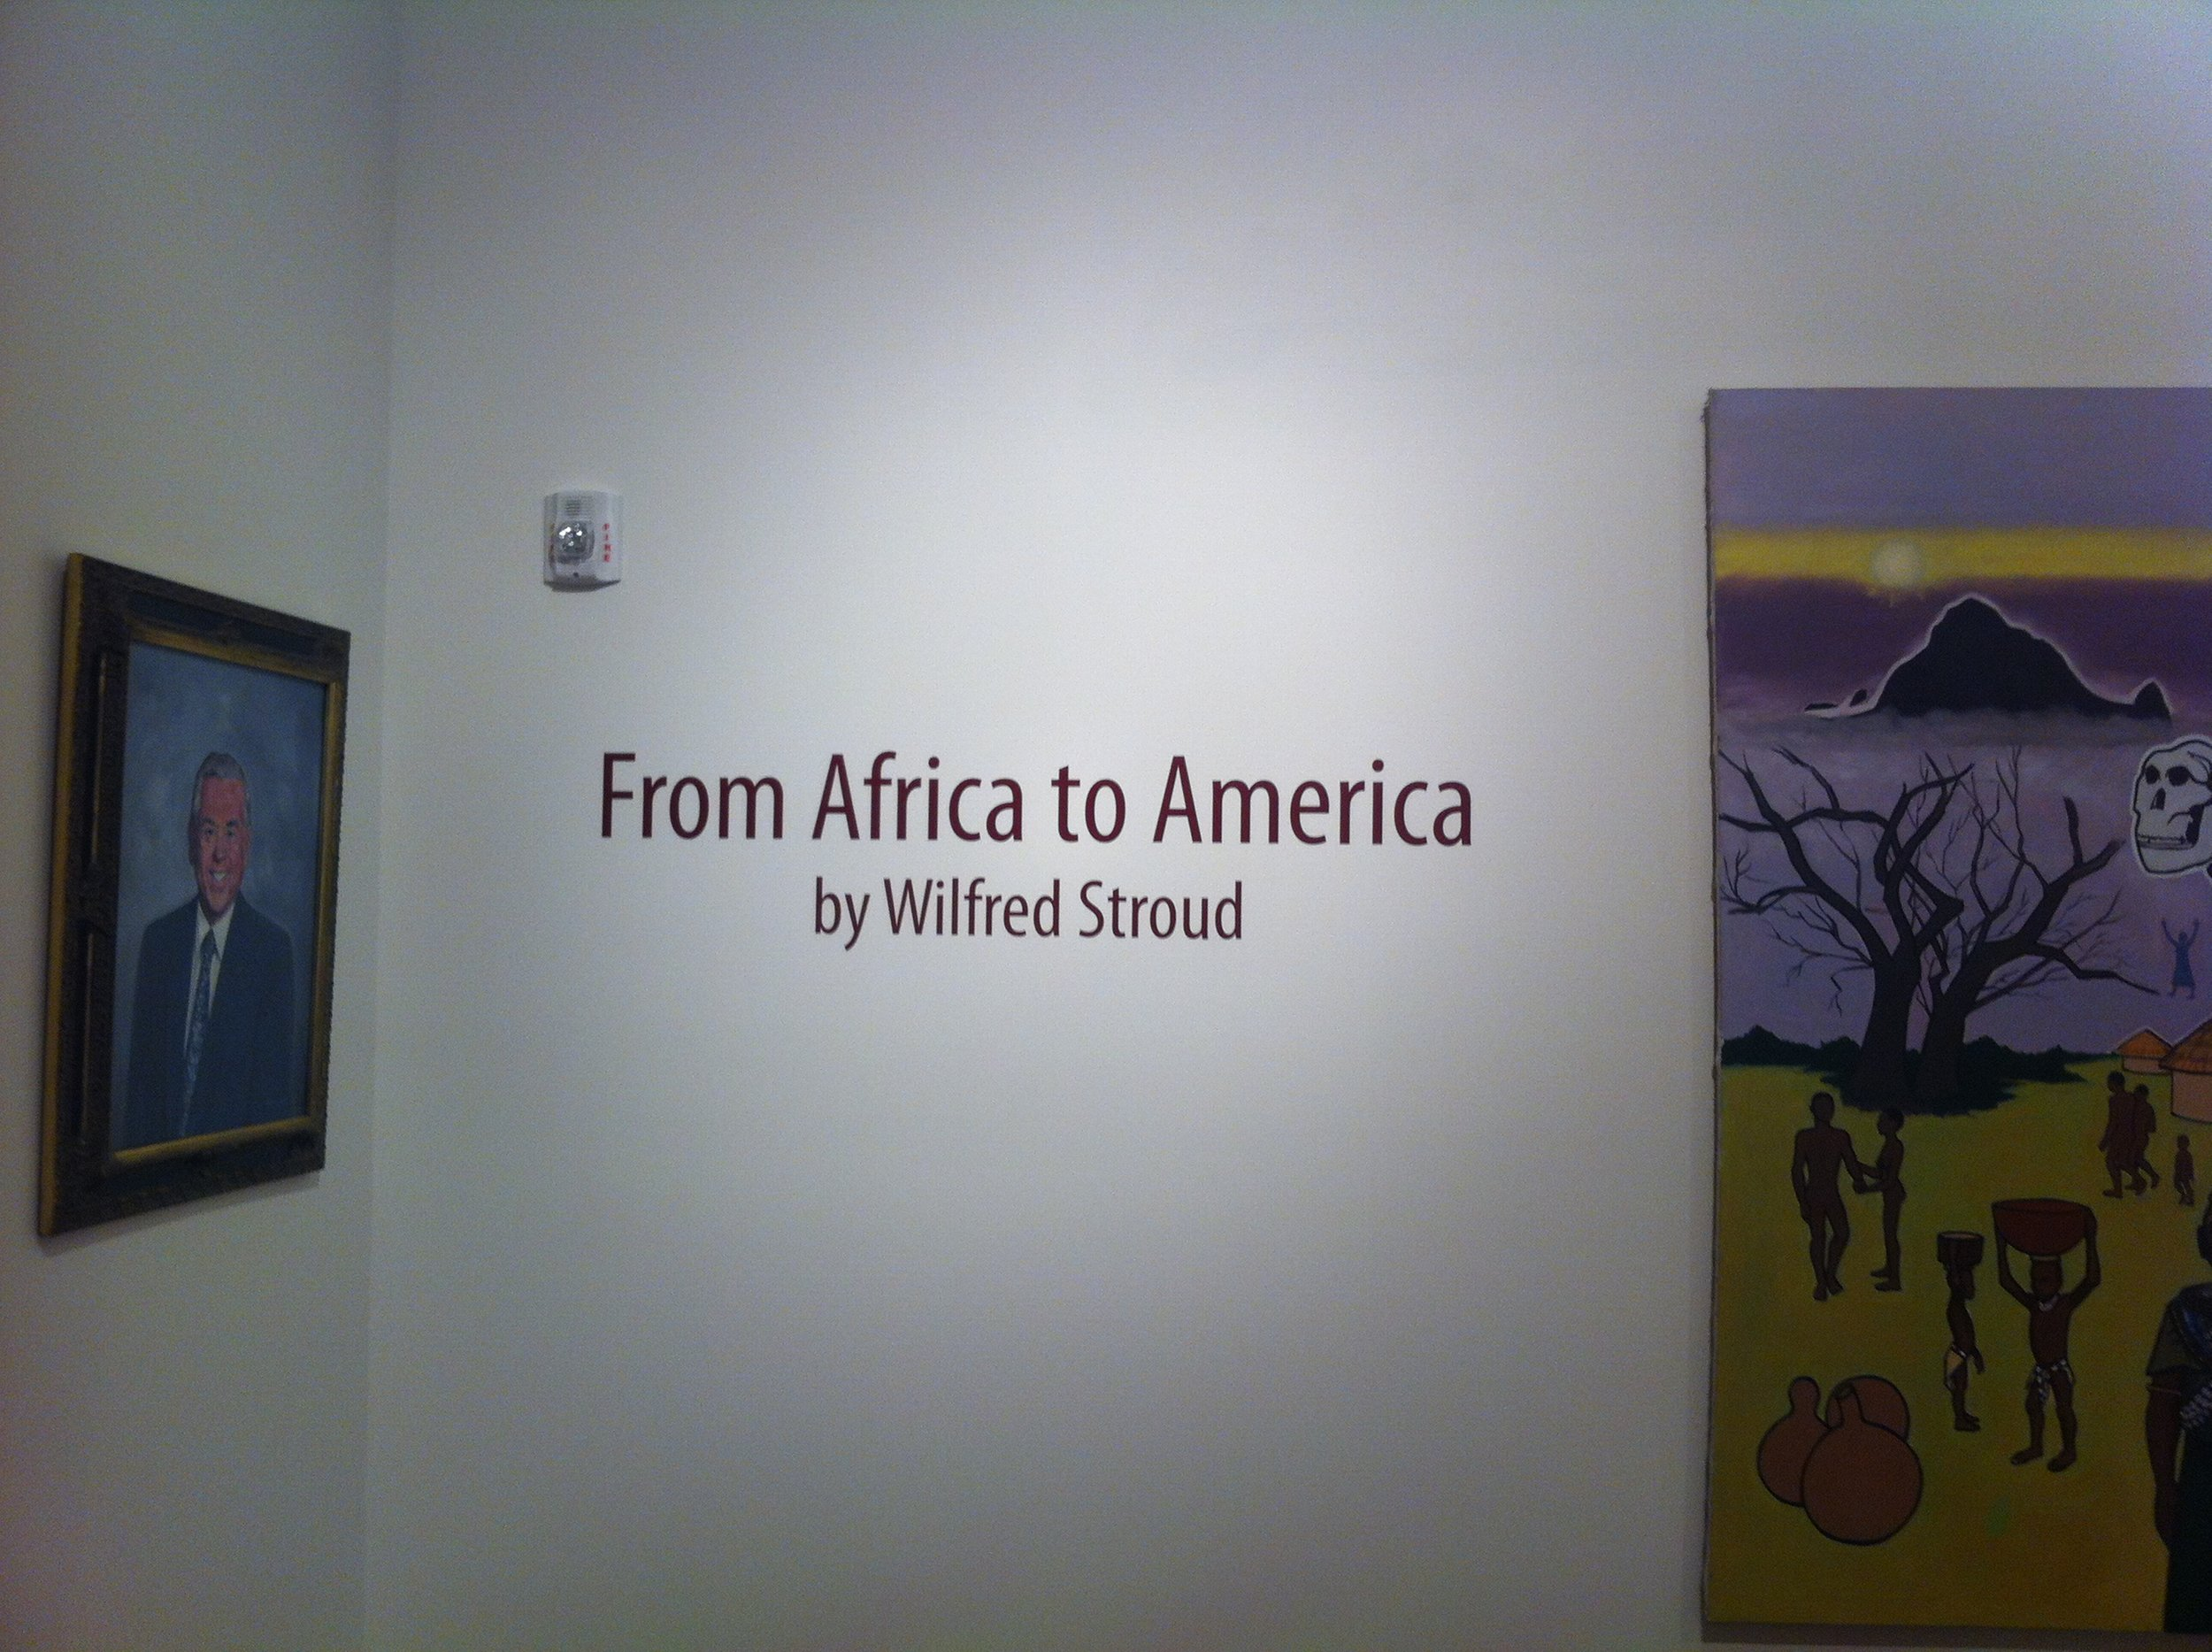 Tubman Museum Gallery. This remarkable piece stretches the length of the room!